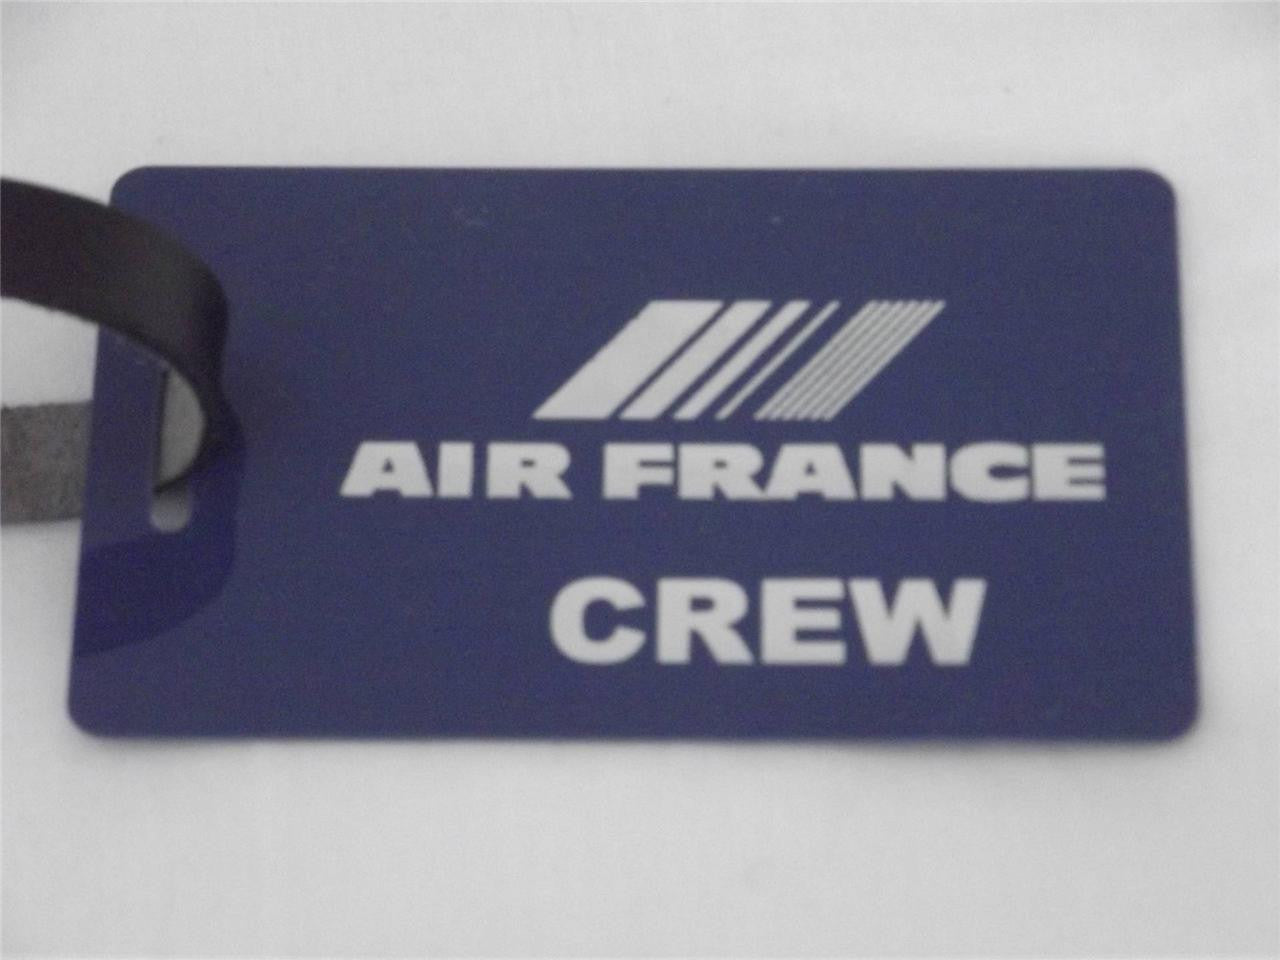 Novelty Luggage Crew Tags - Blue, Air France  ( CREW & 1ST CLASS) -  Inflightgoods   - 2